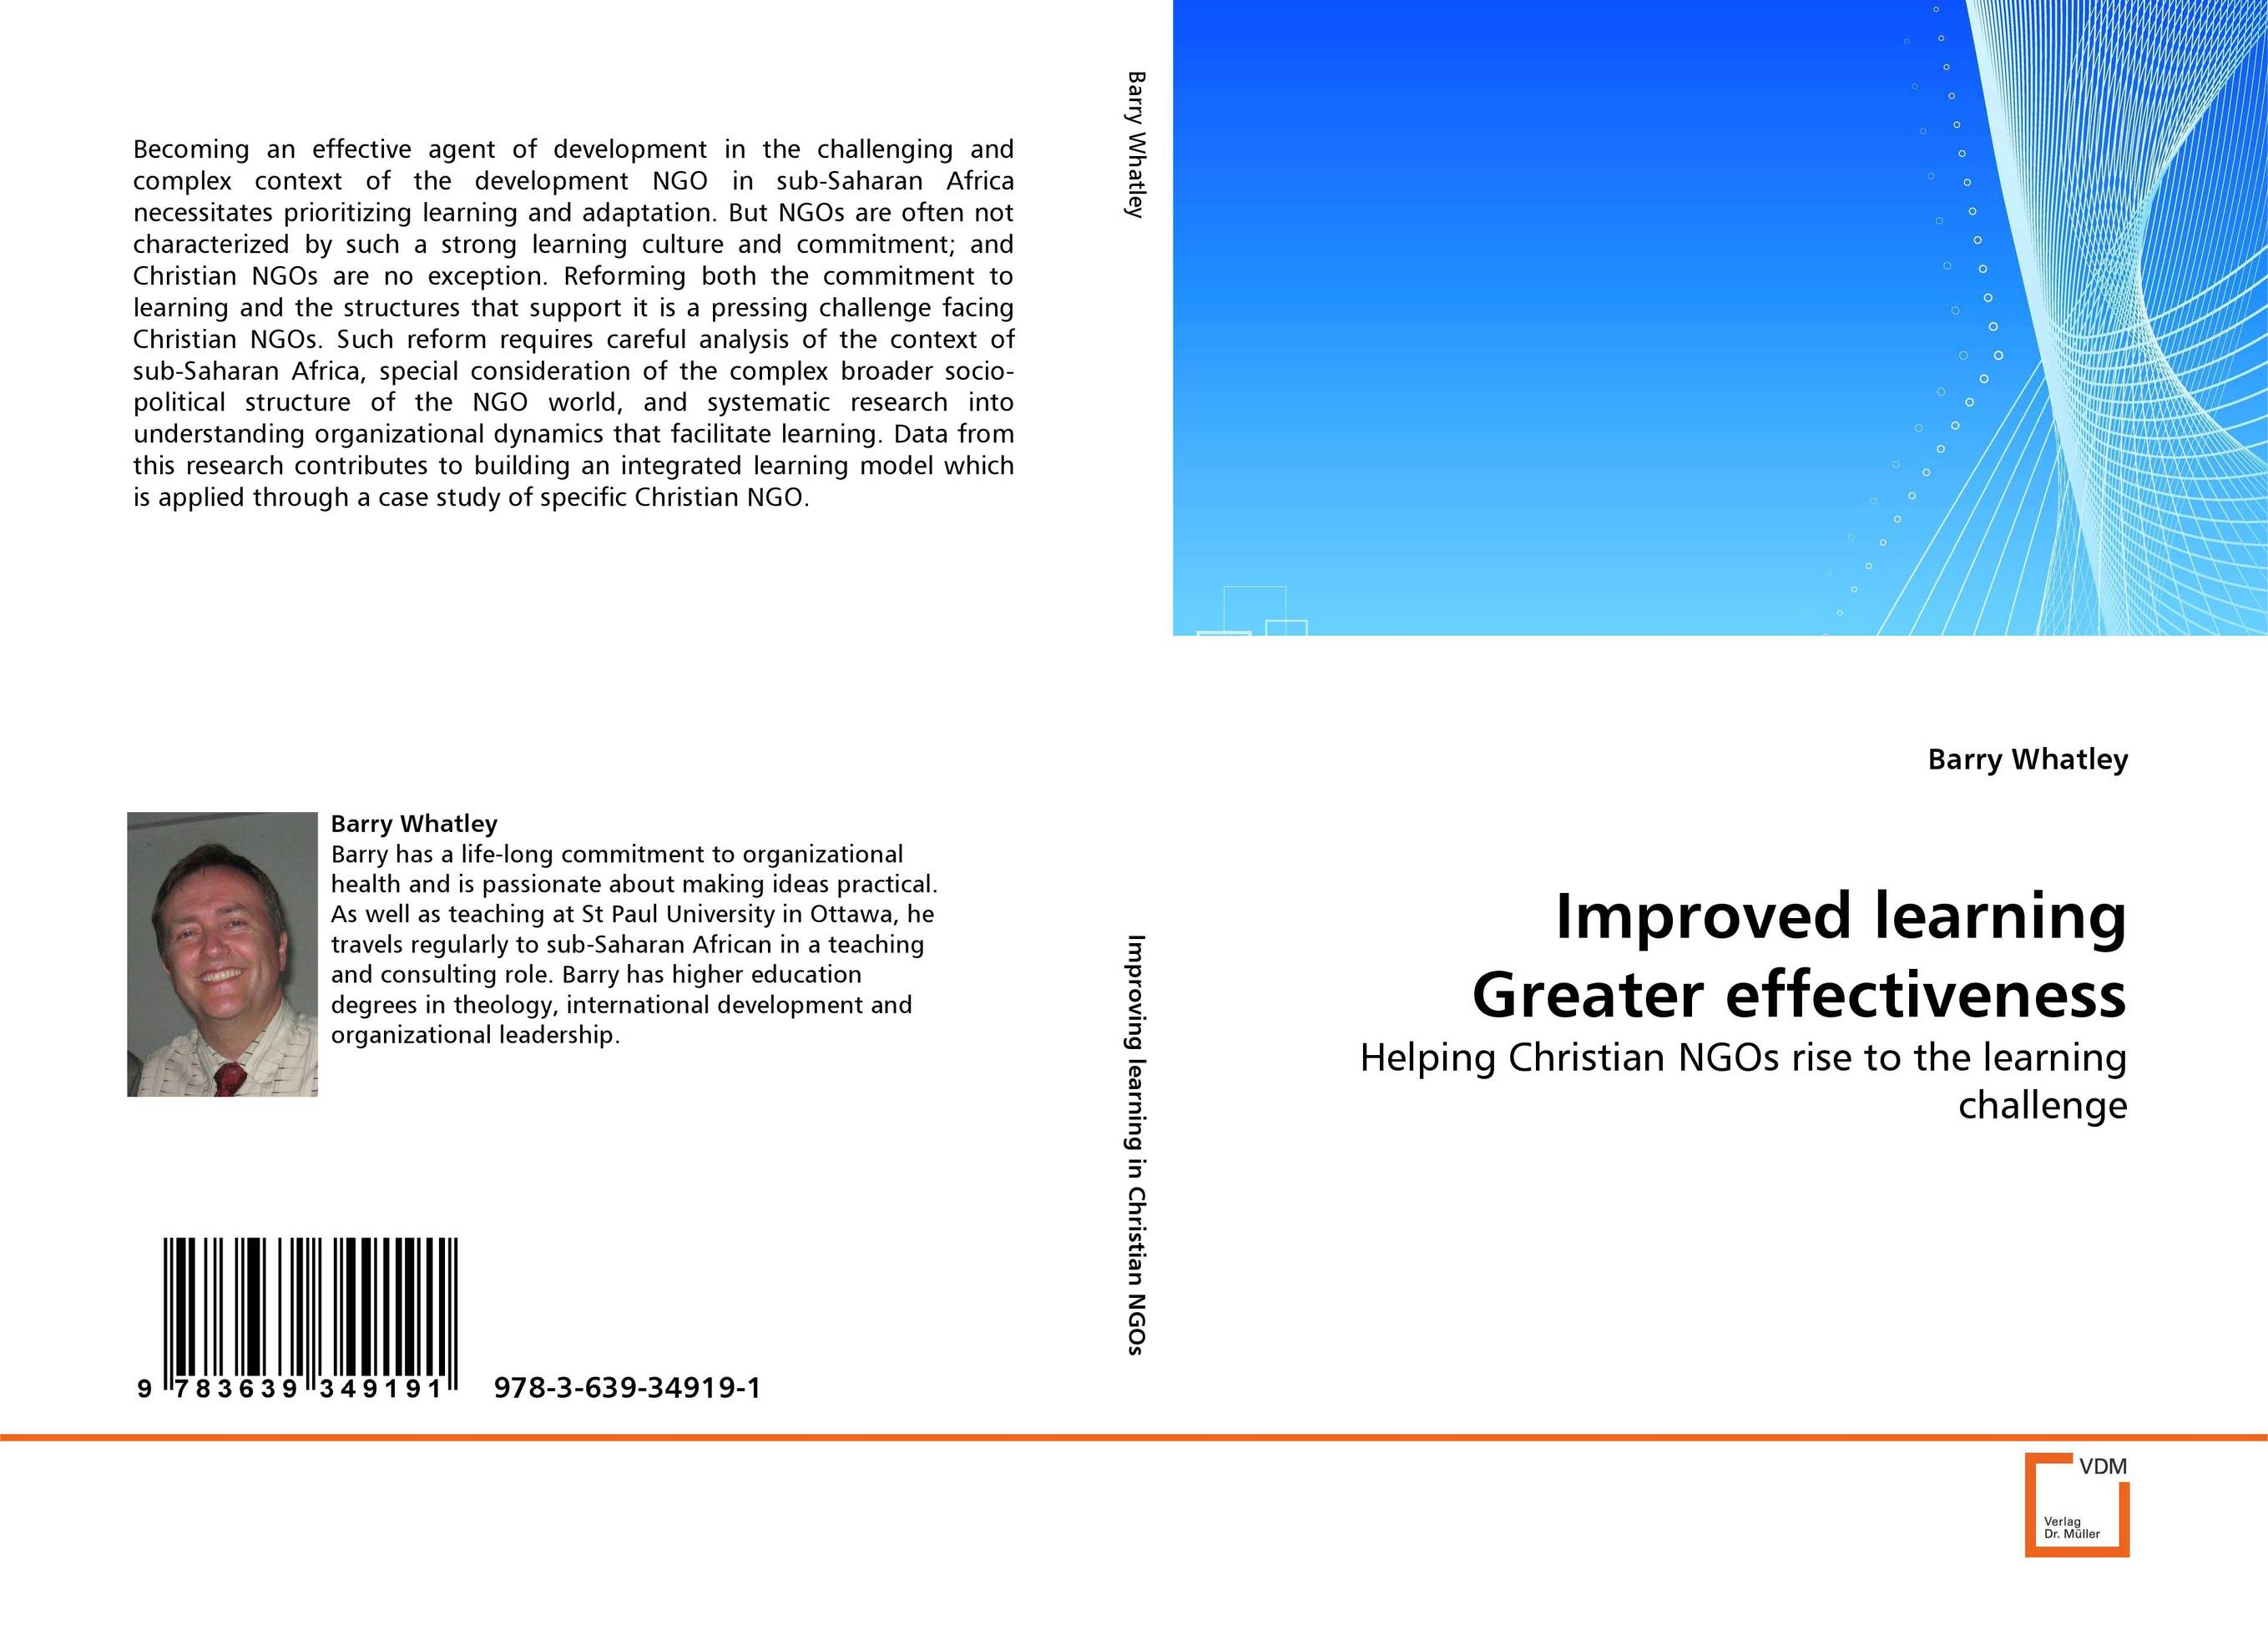 Improved learning Greater effectiveness ngos